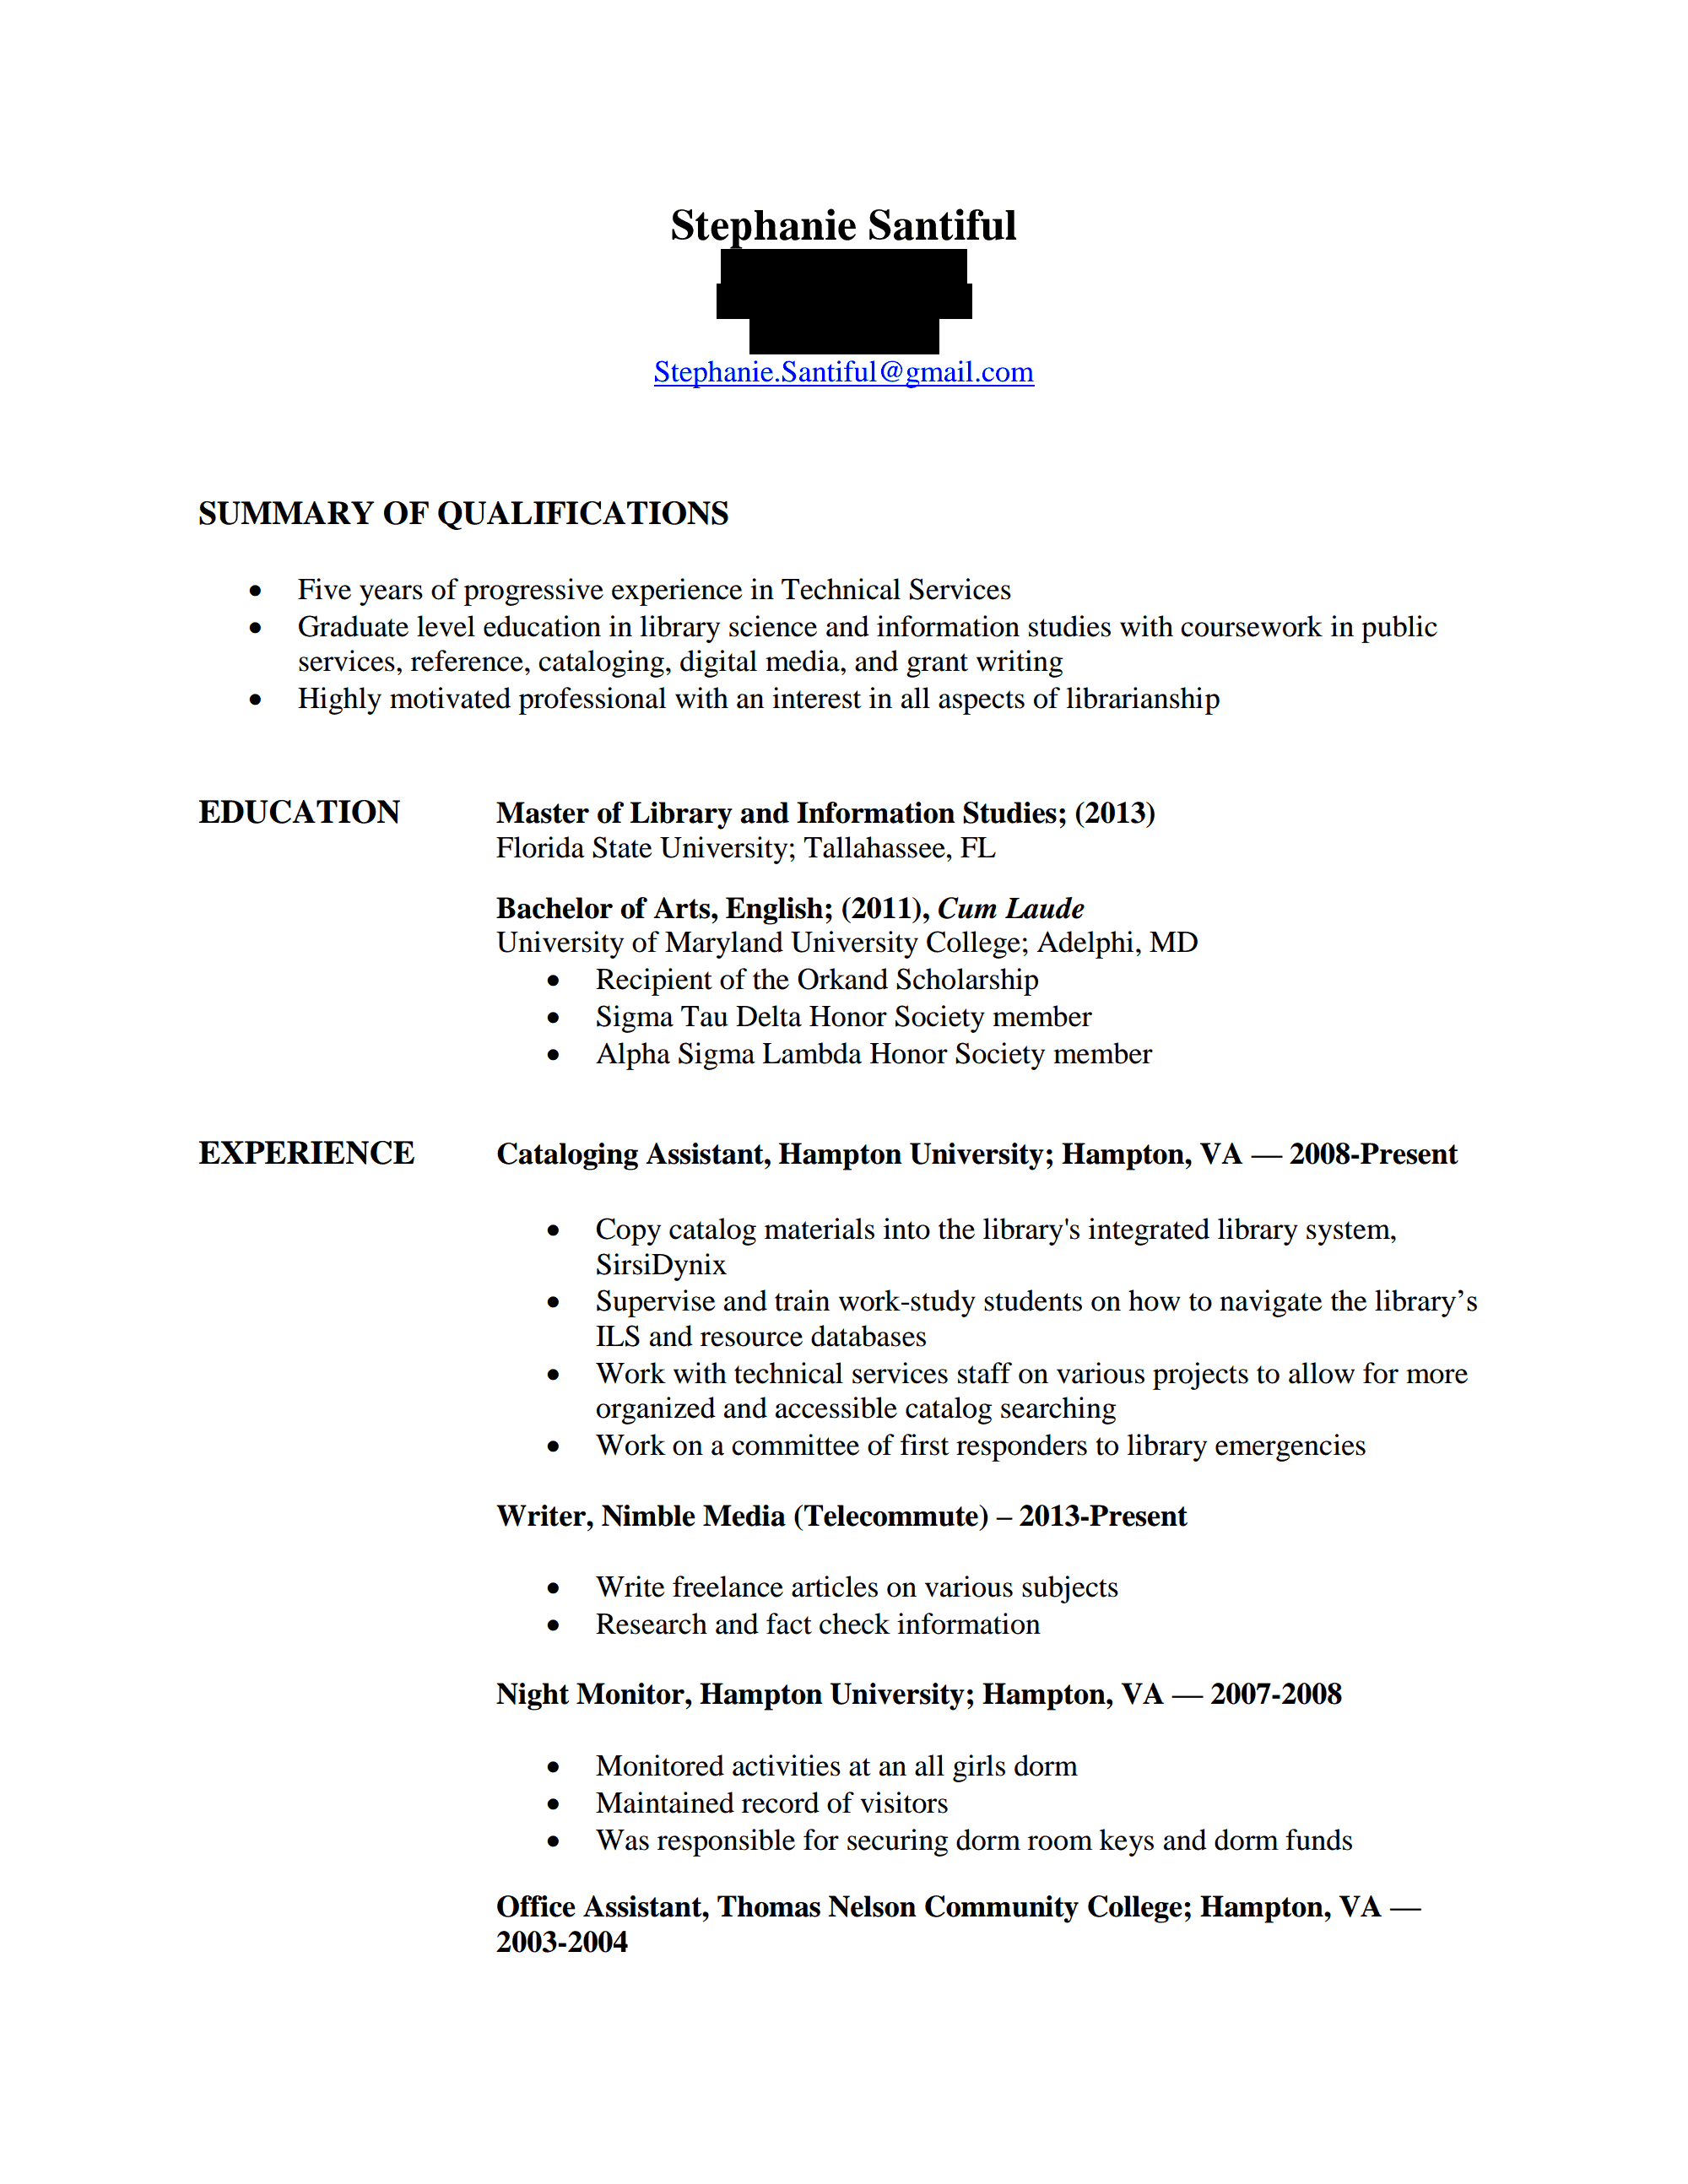 cv review hiring librarians page  stephanie santiful resume